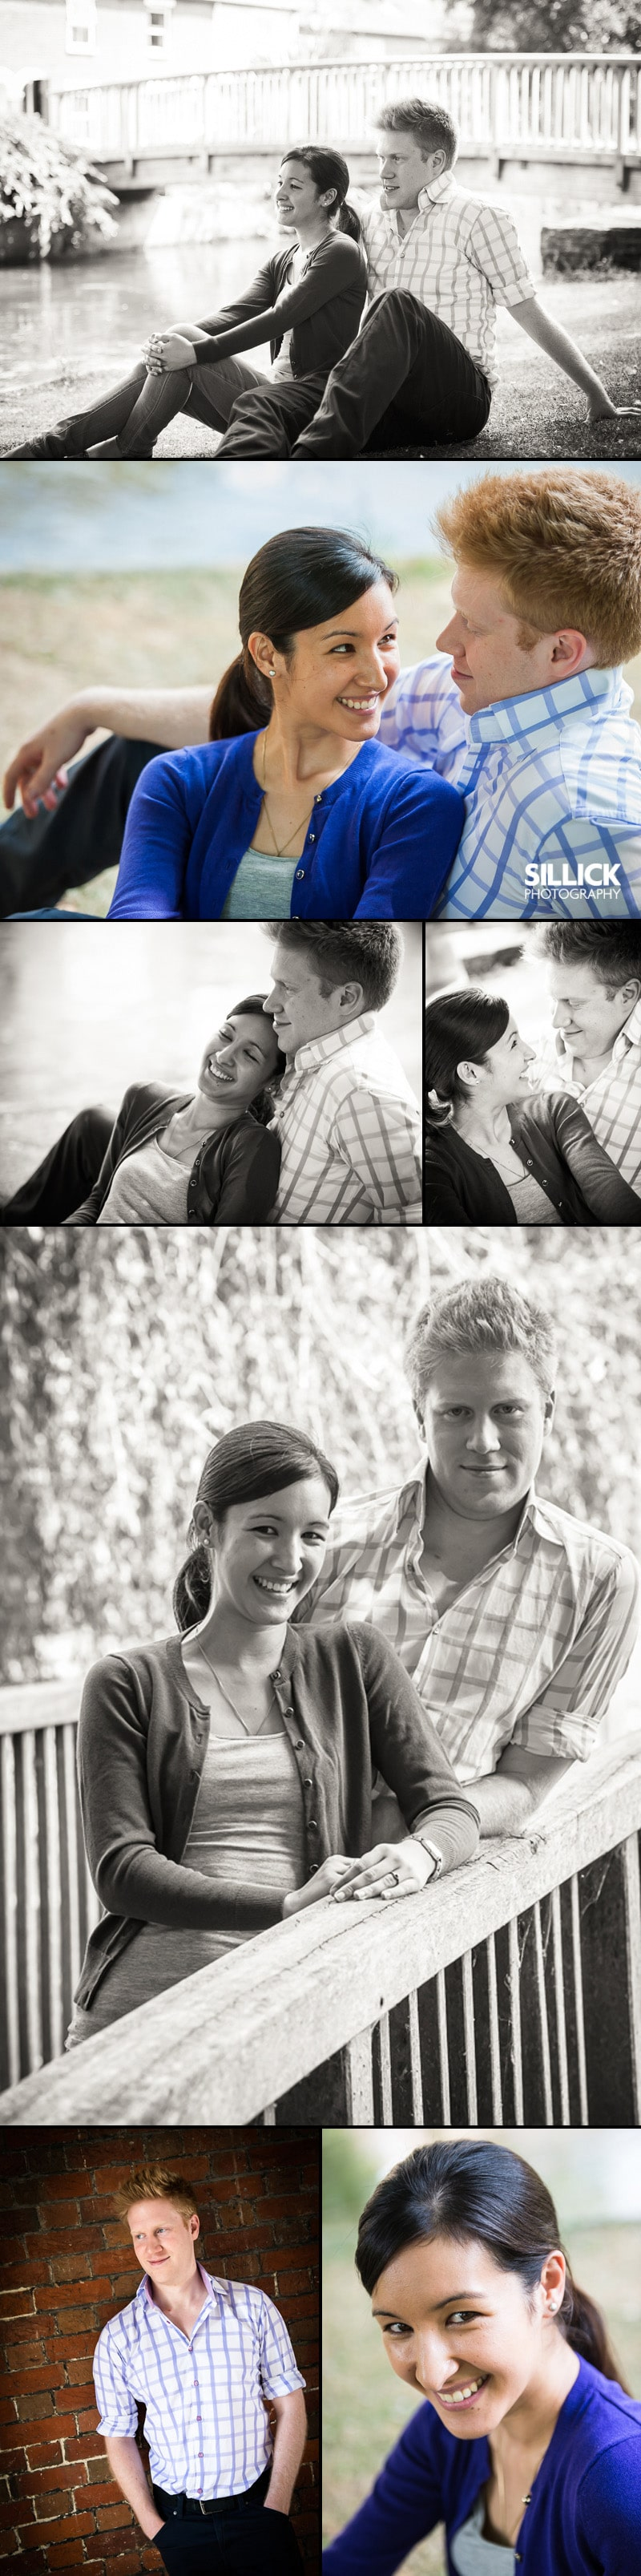 Winchester Pre-wedding photoshoot - Sillick Photography